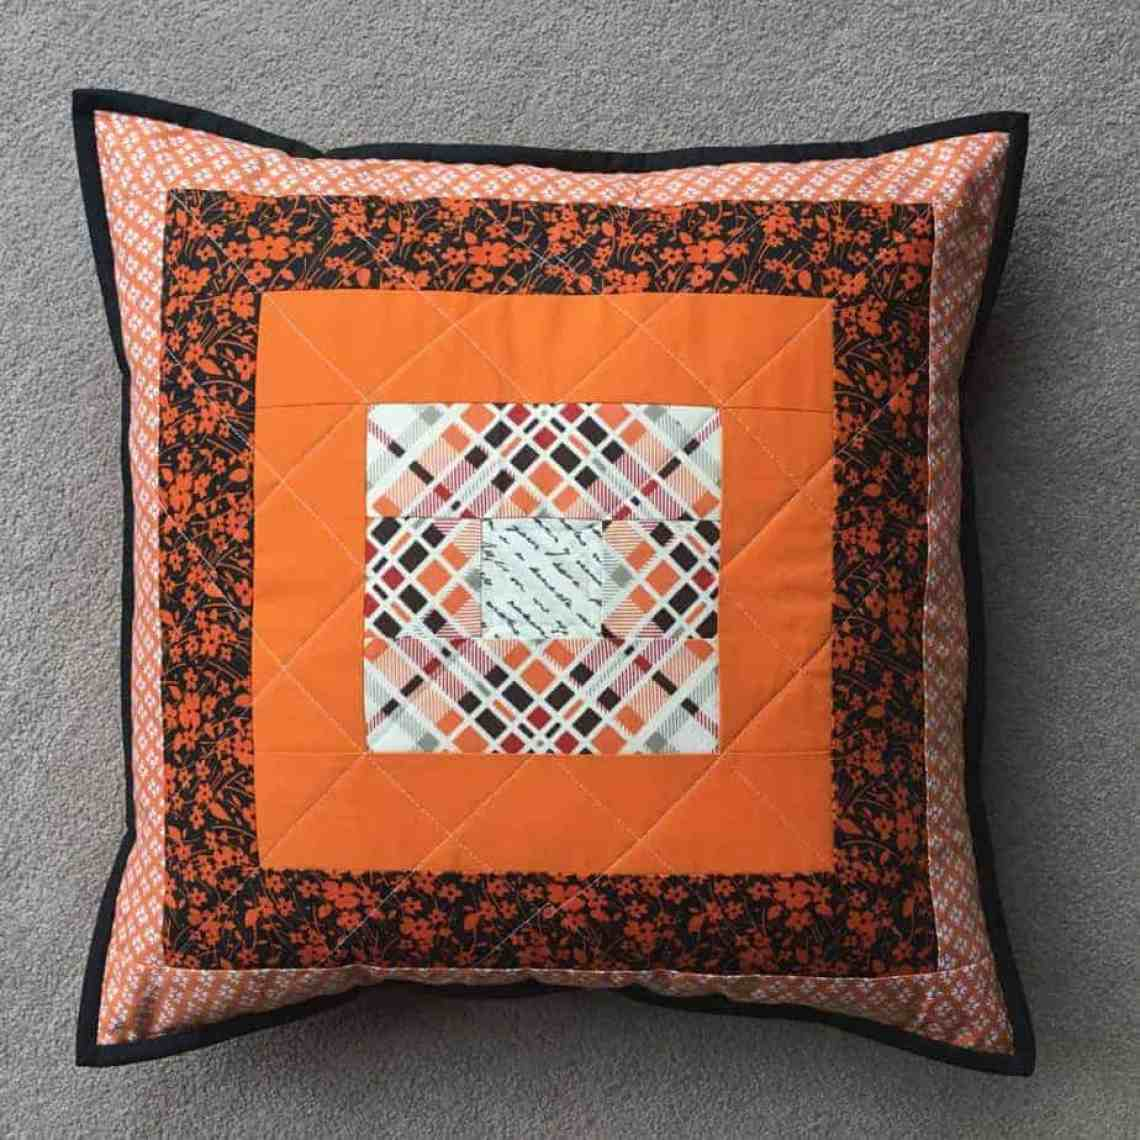 Courthouse steps block cushion by fabricandflowers | Sonia Spence